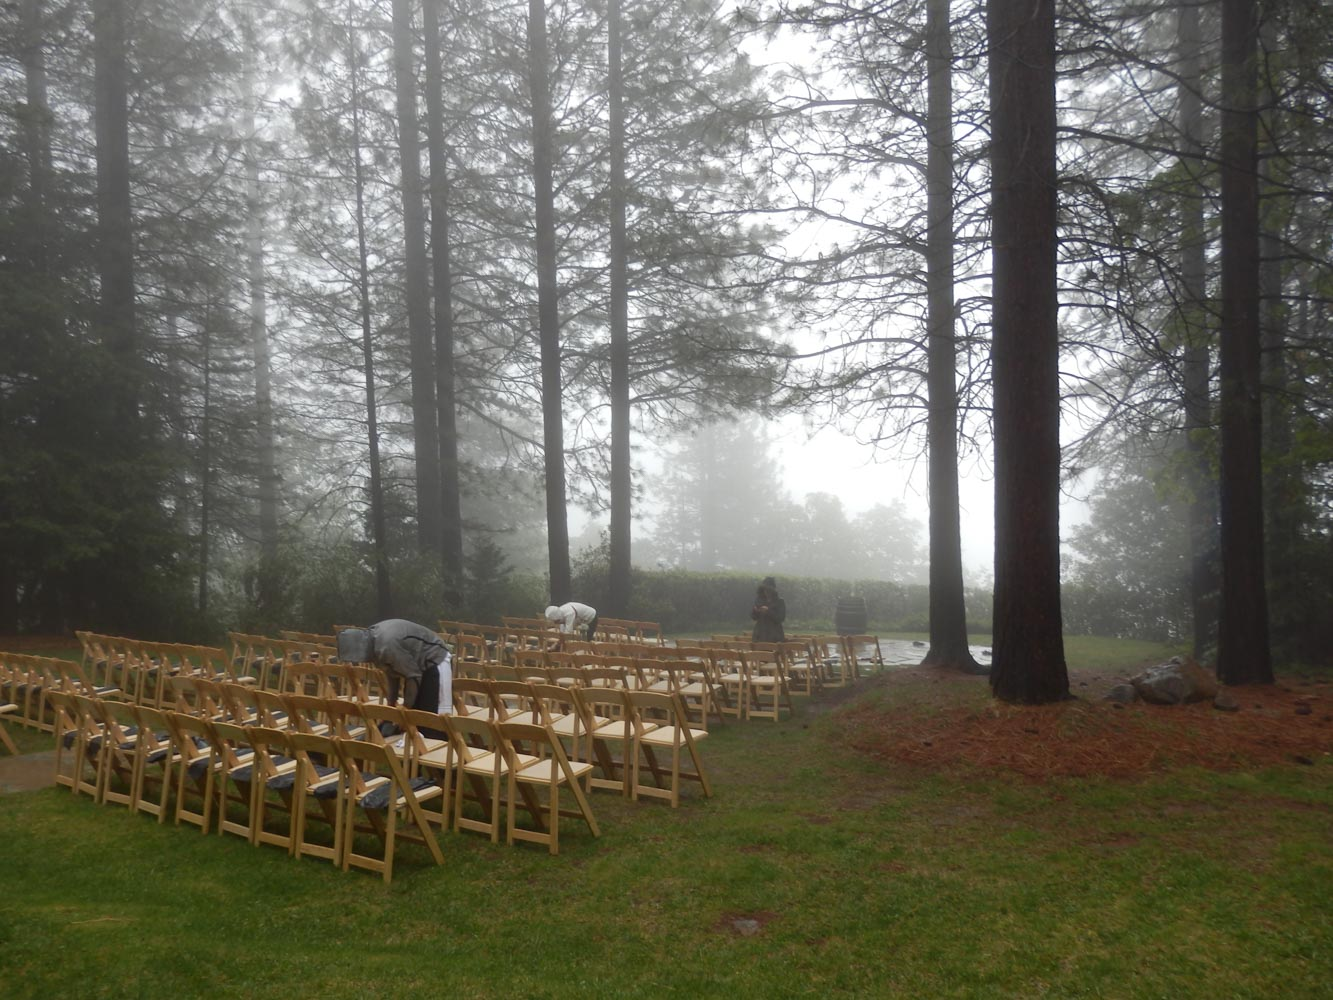 Staff in rain gear wiping down rows of wooden chairs at wedding ceremony site, with light rain falling.